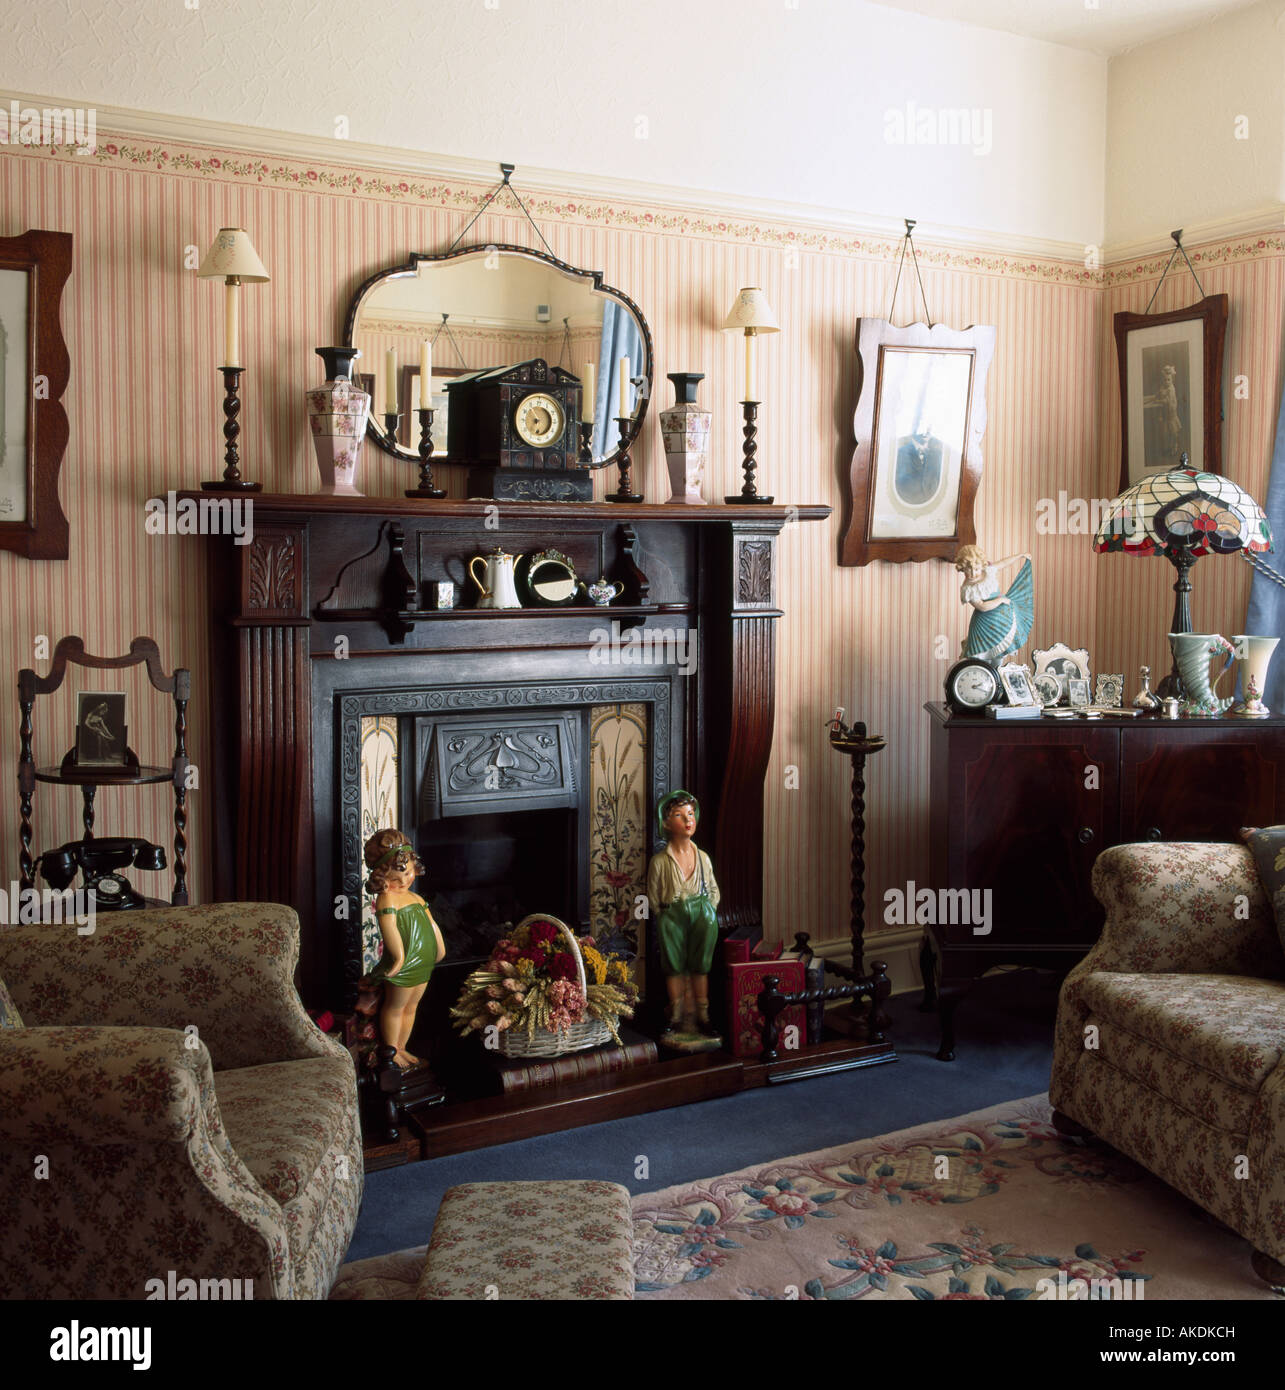 Thirties Figures In Fireplace In Small Living Room With Striped Wallpaper